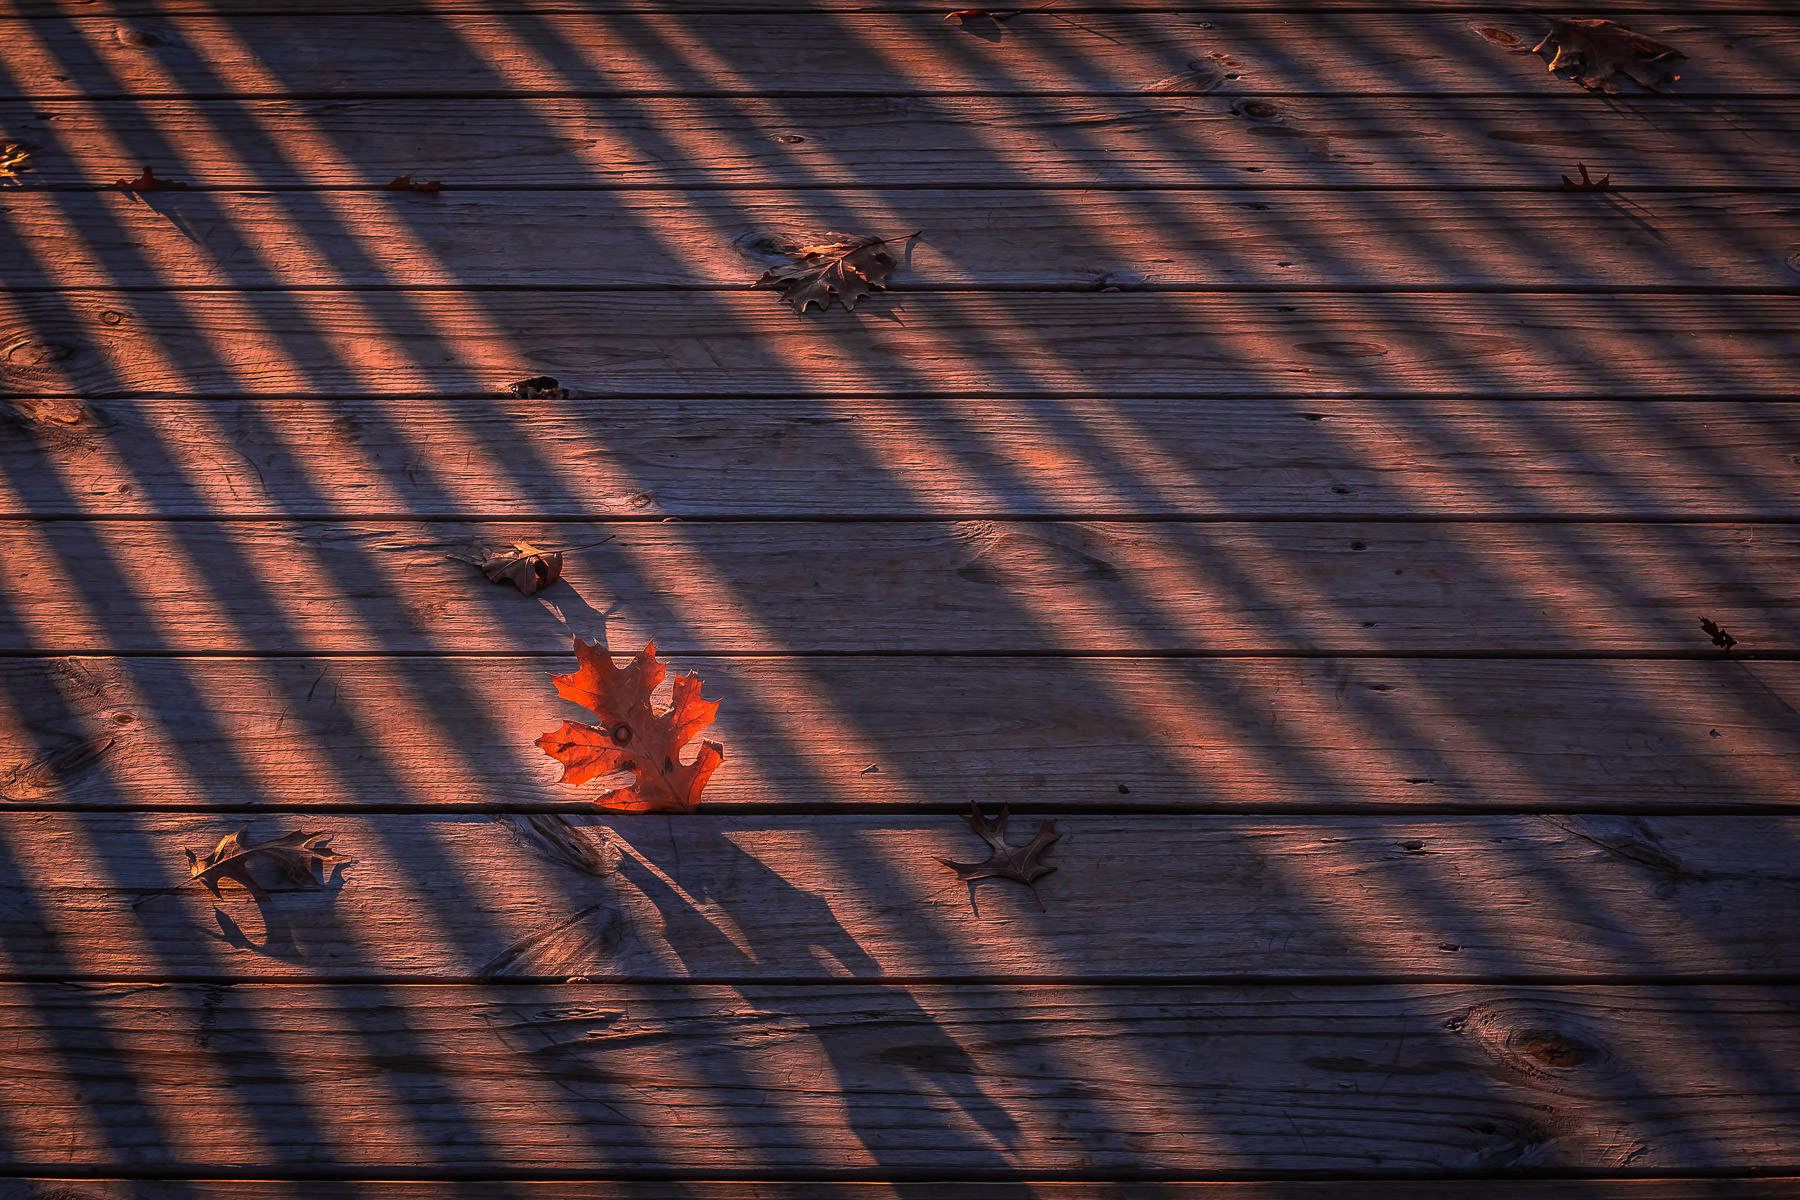 A leaf caught in a wooden boardwalk catches the last light of the day at Addison Circle Park, Addison, Texas.